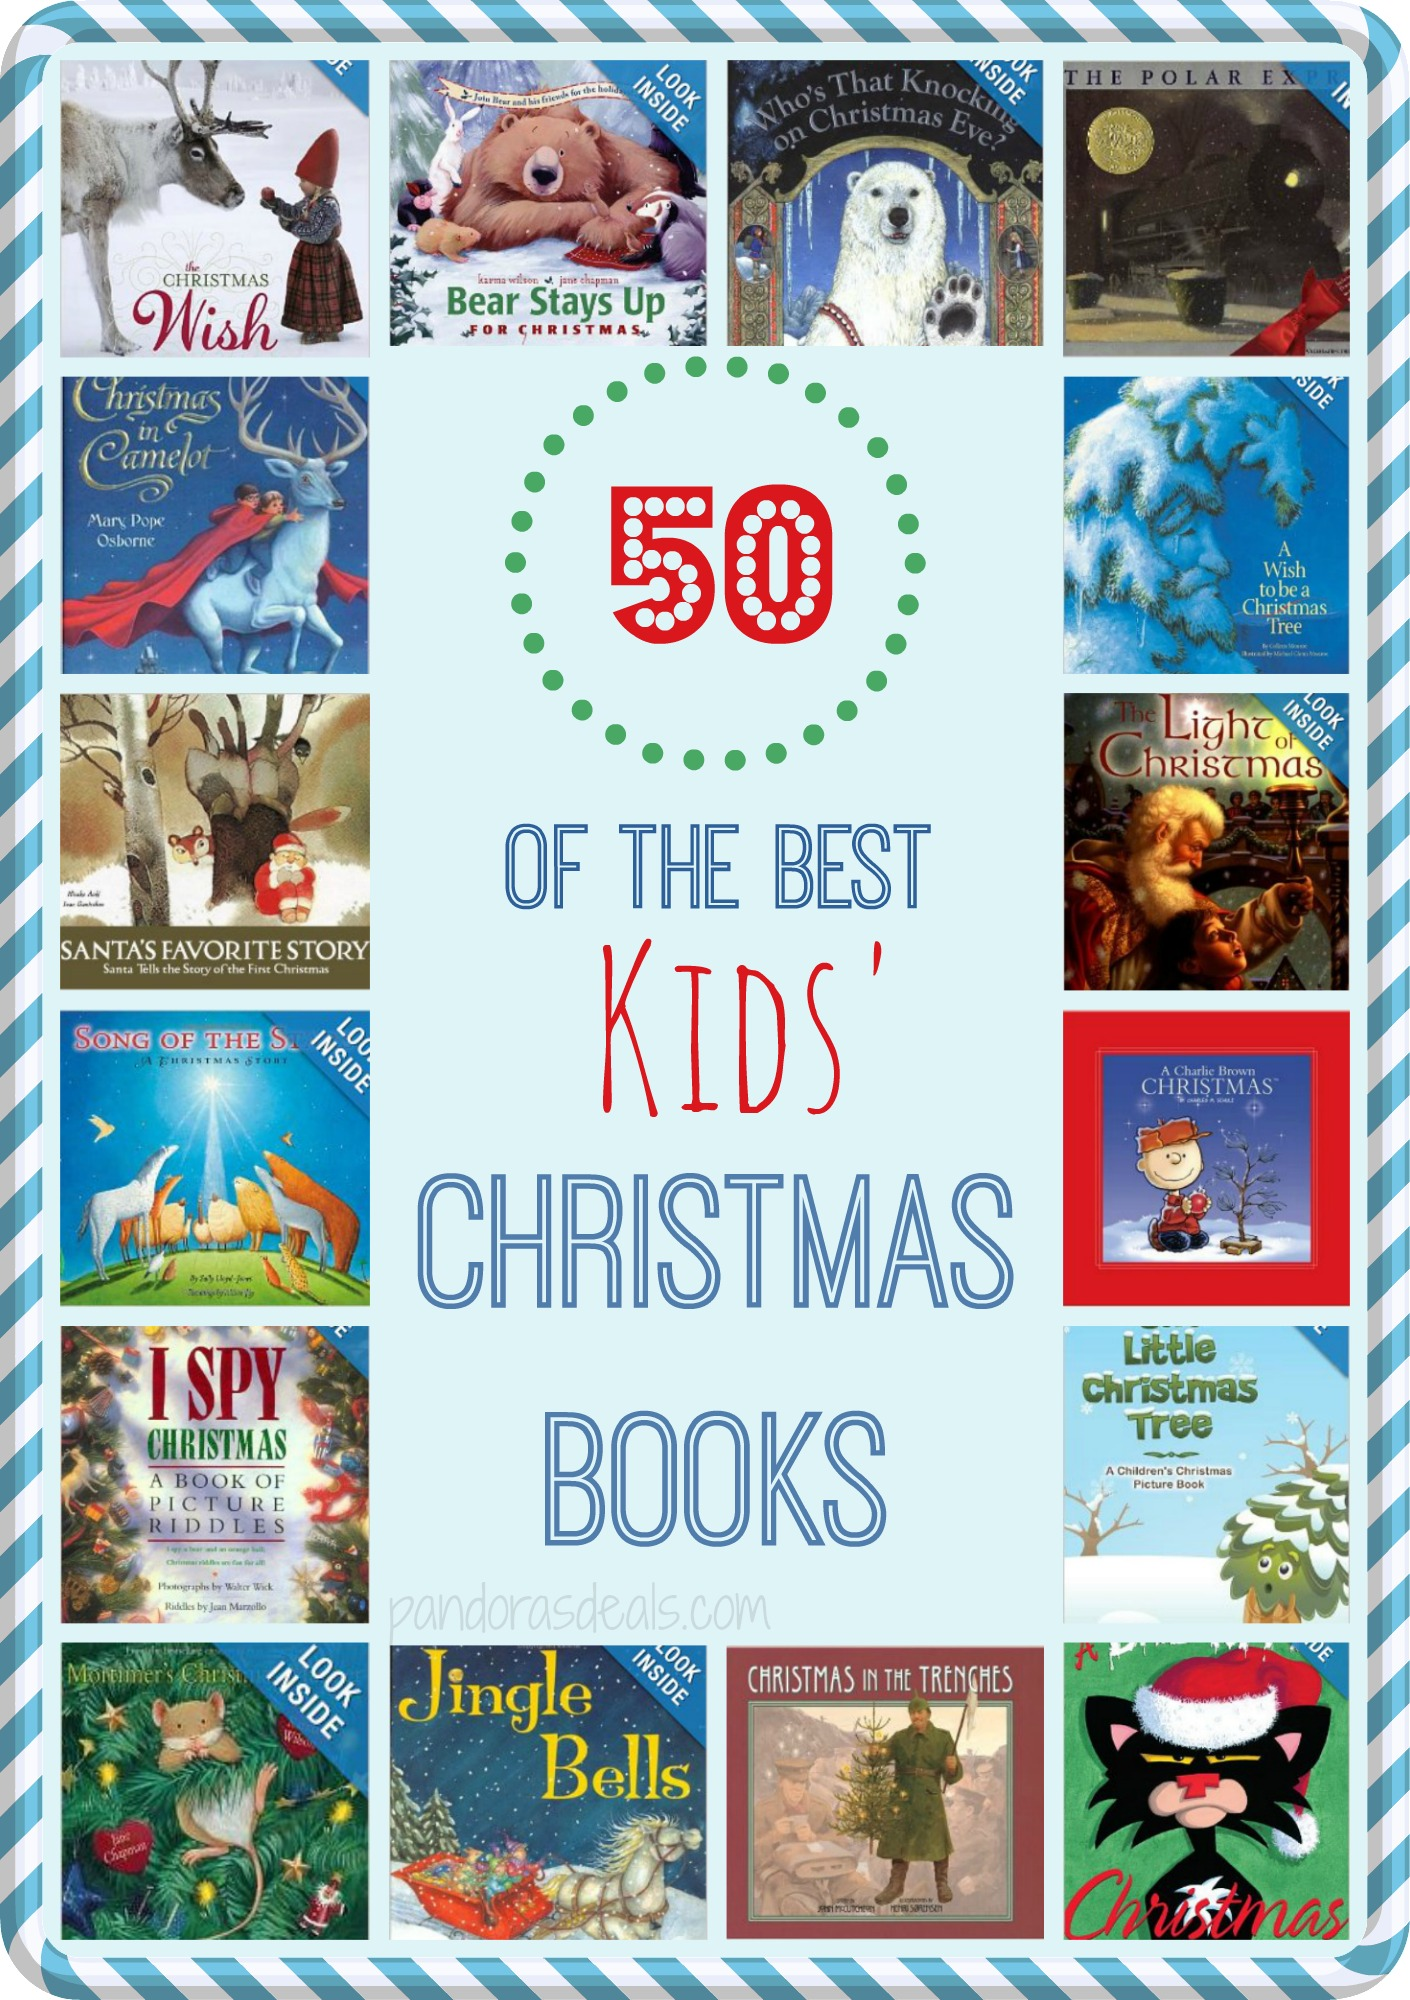 50 of the best kids christmas books - Best Christmas Books For Kids